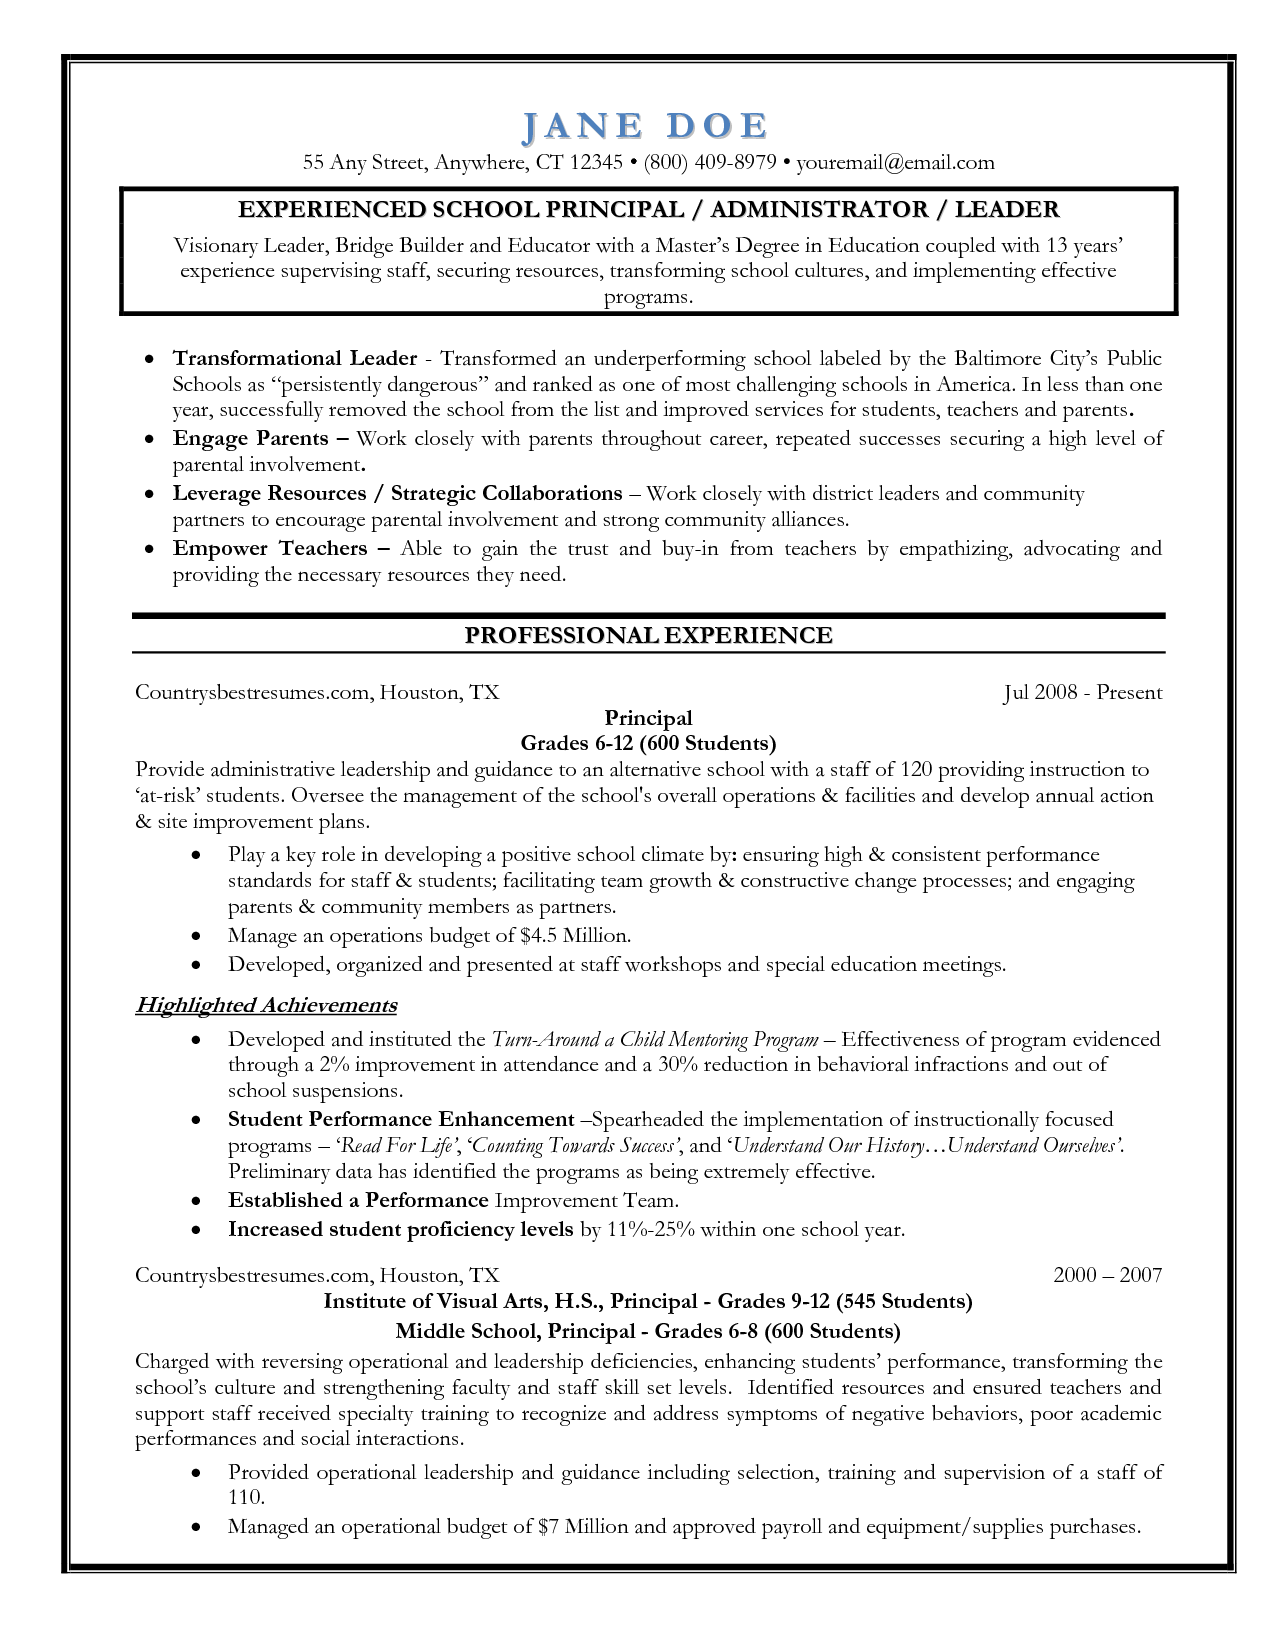 entry-level assistant principal resume templates | senior educator